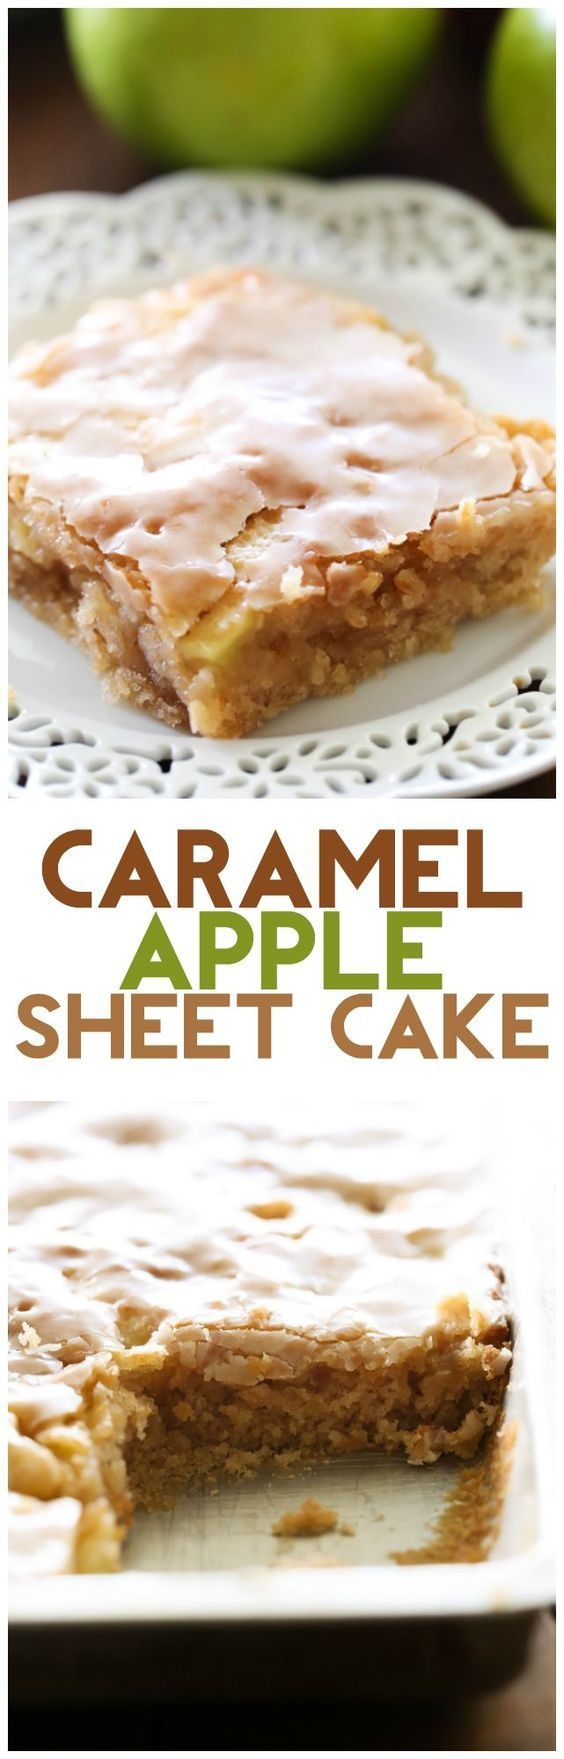 Caramel Apple Sheet Cake is part of Desserts - This delicious apple cake is perfectly moist and has caramel frosting infused in each and every bite! It is heavenly!